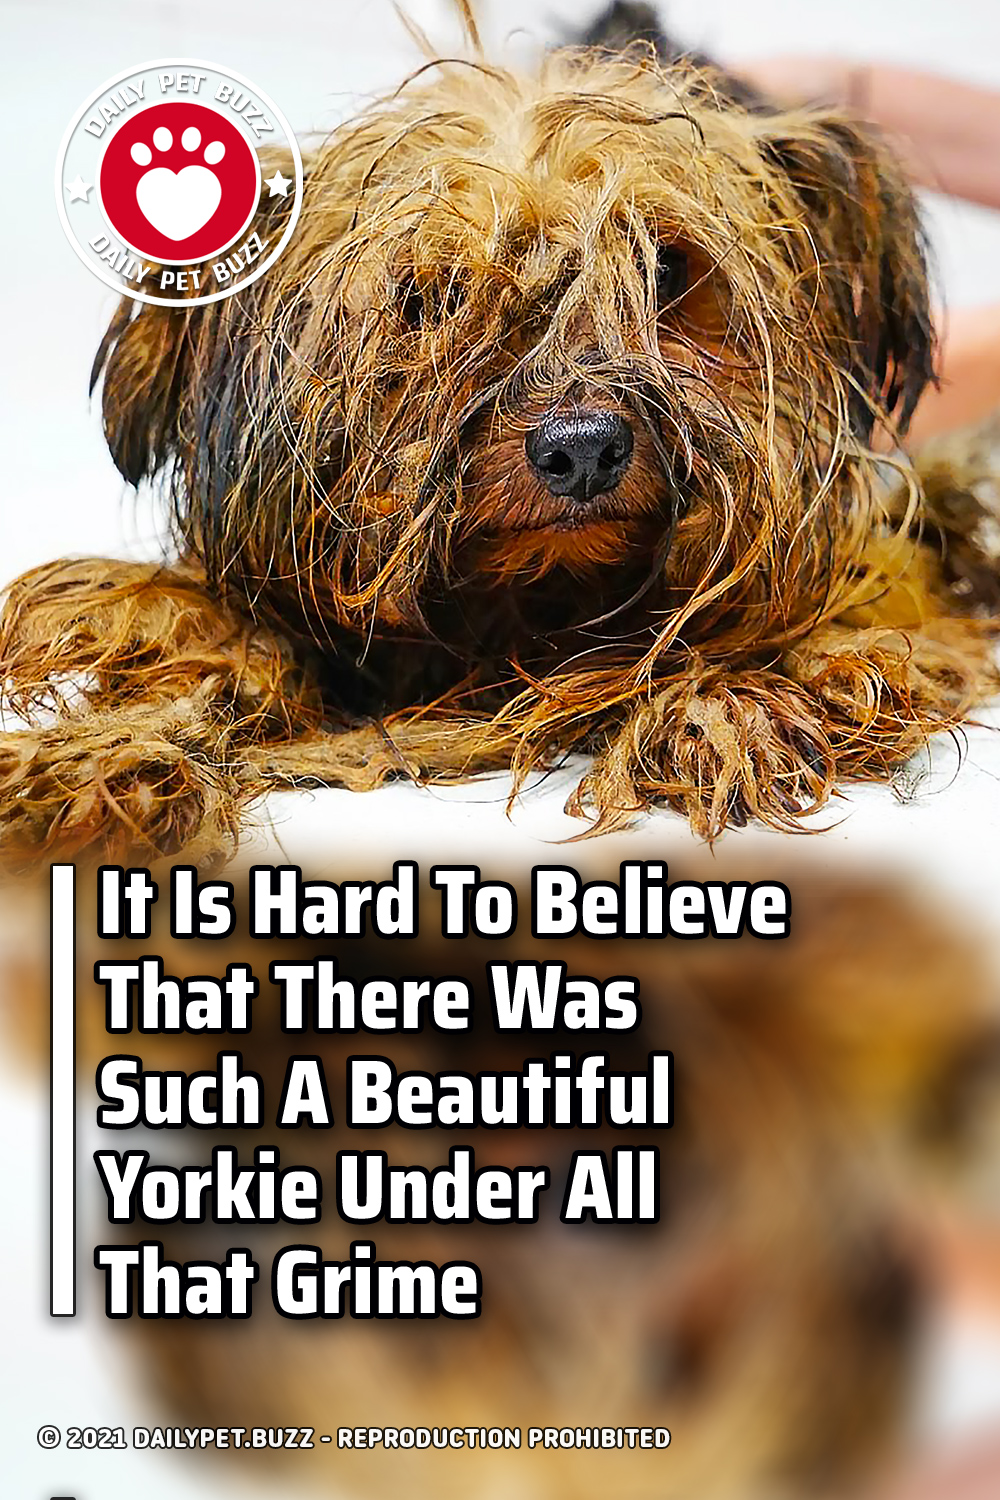 It Is Hard To Believe That There Was Such A Beautiful Yorkie Under All That Grime